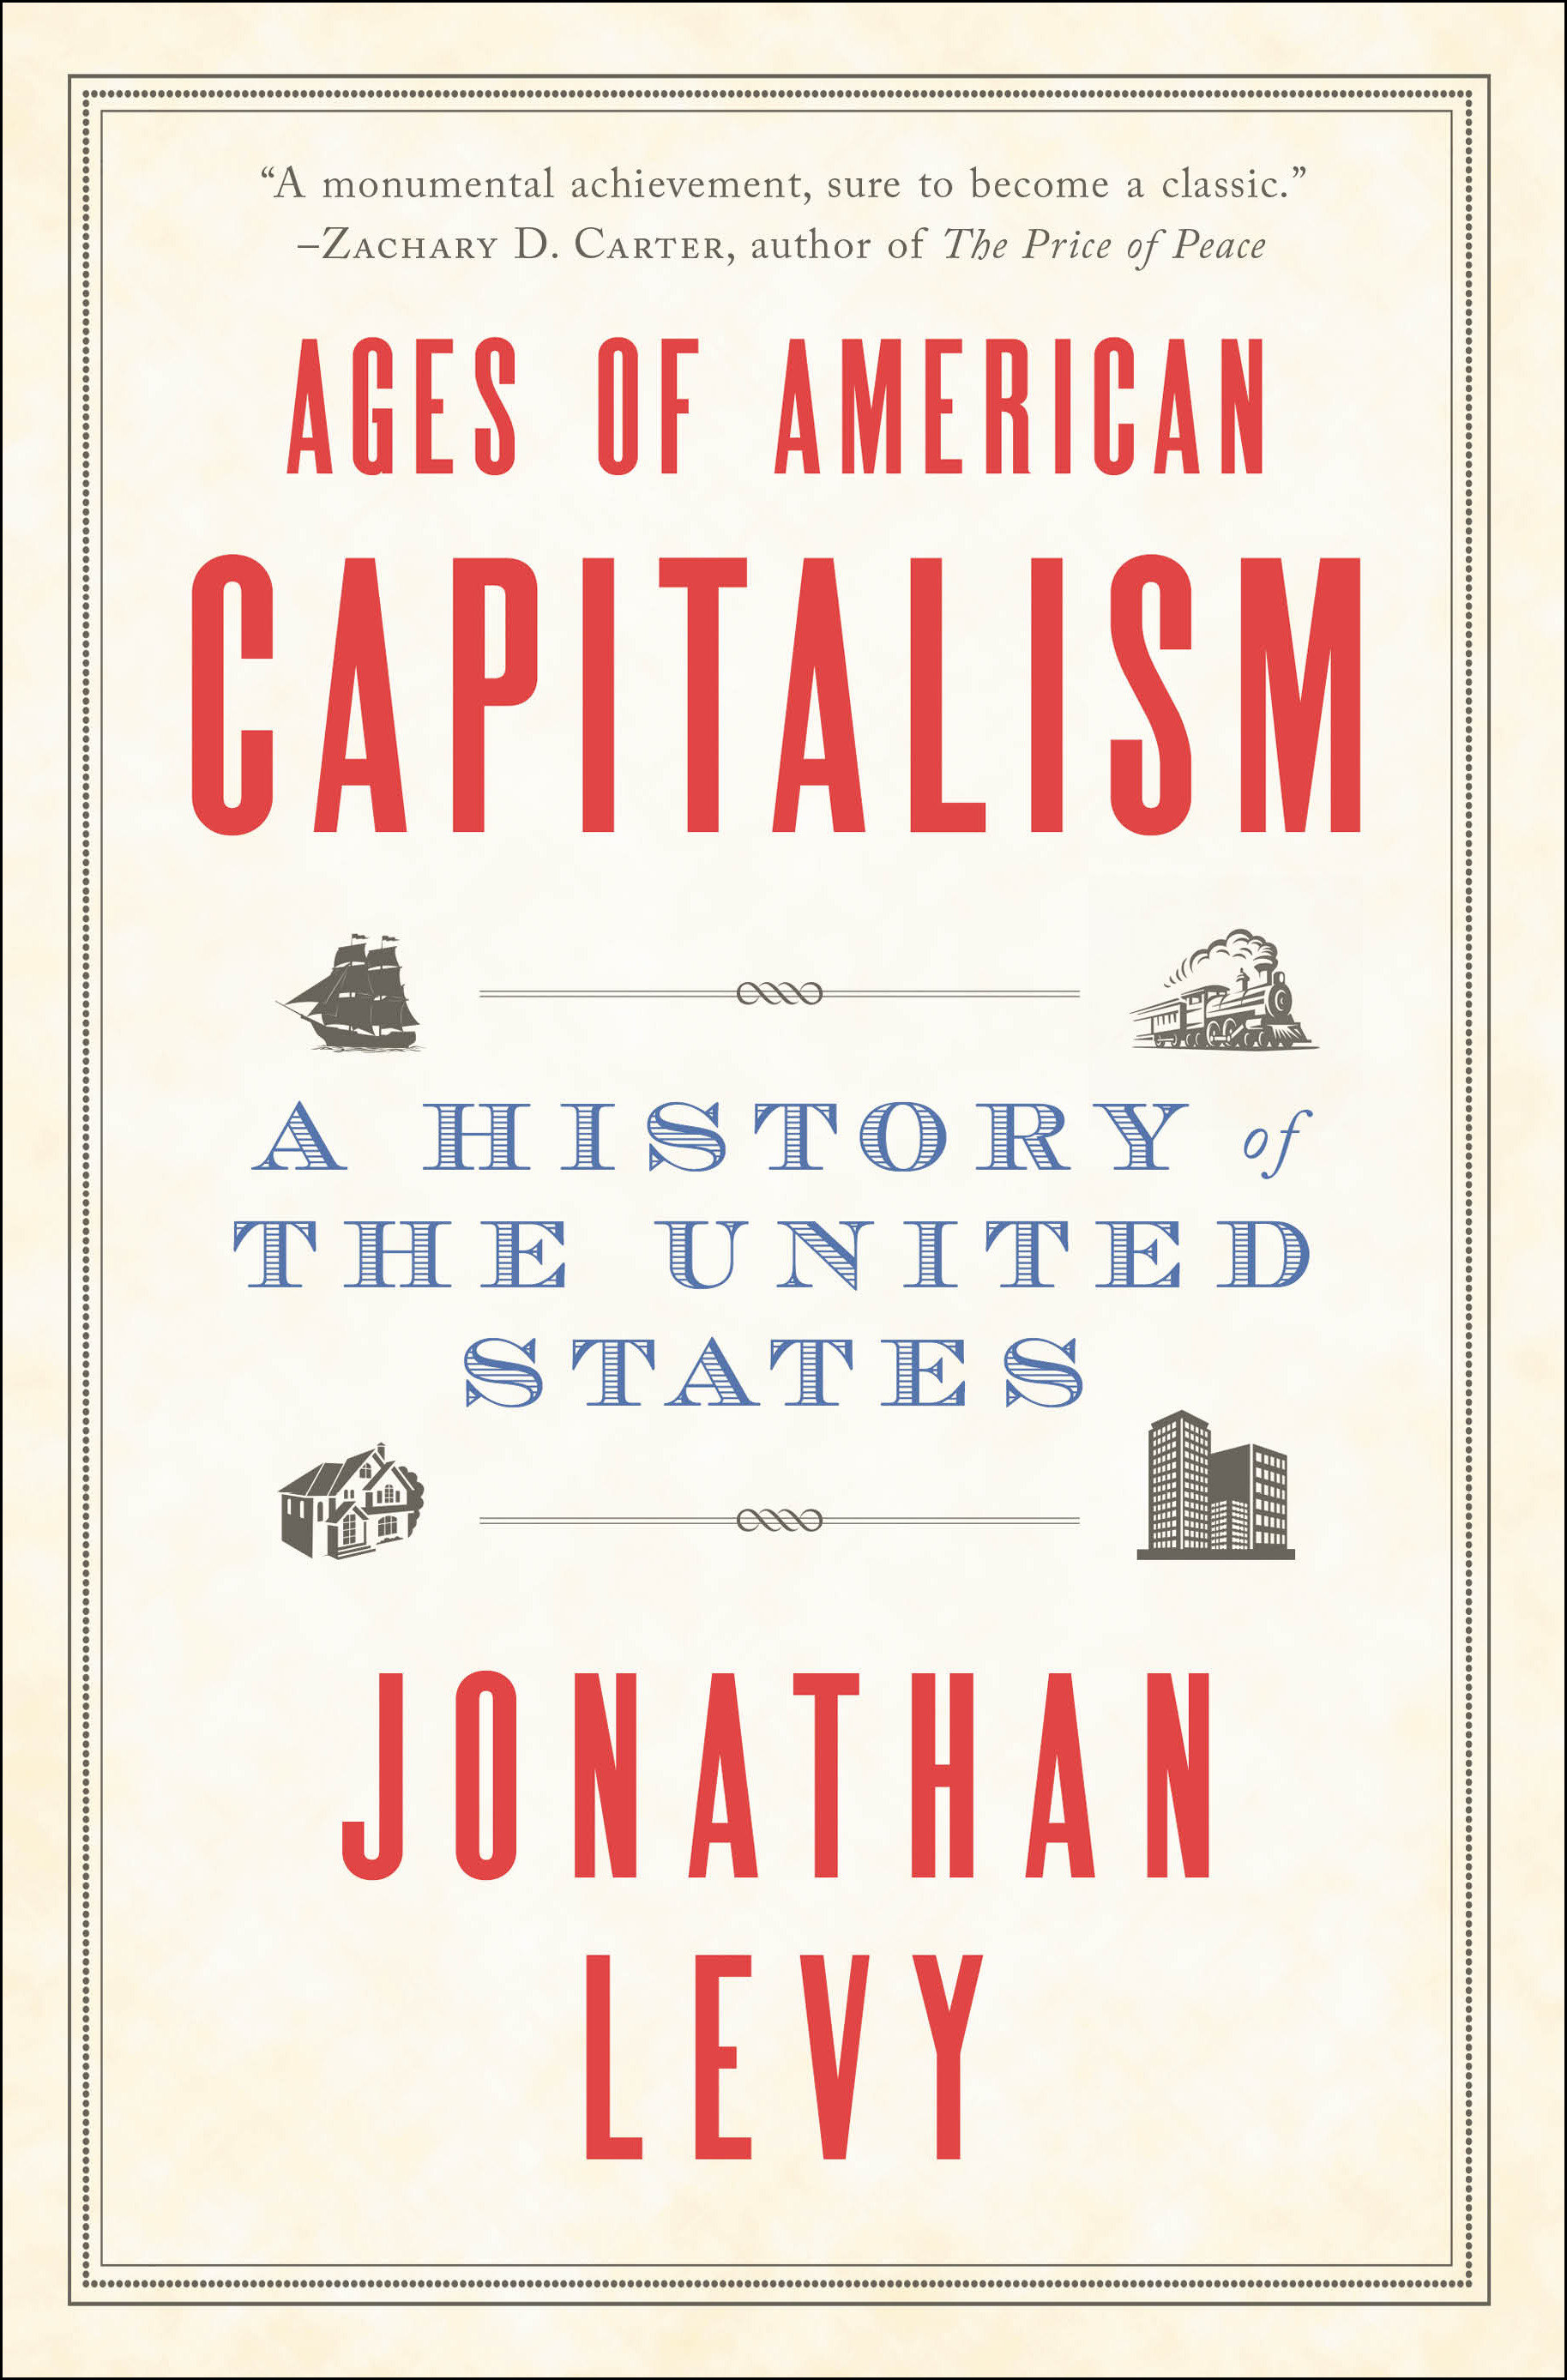 Ages of American Capitalism A History of the United States